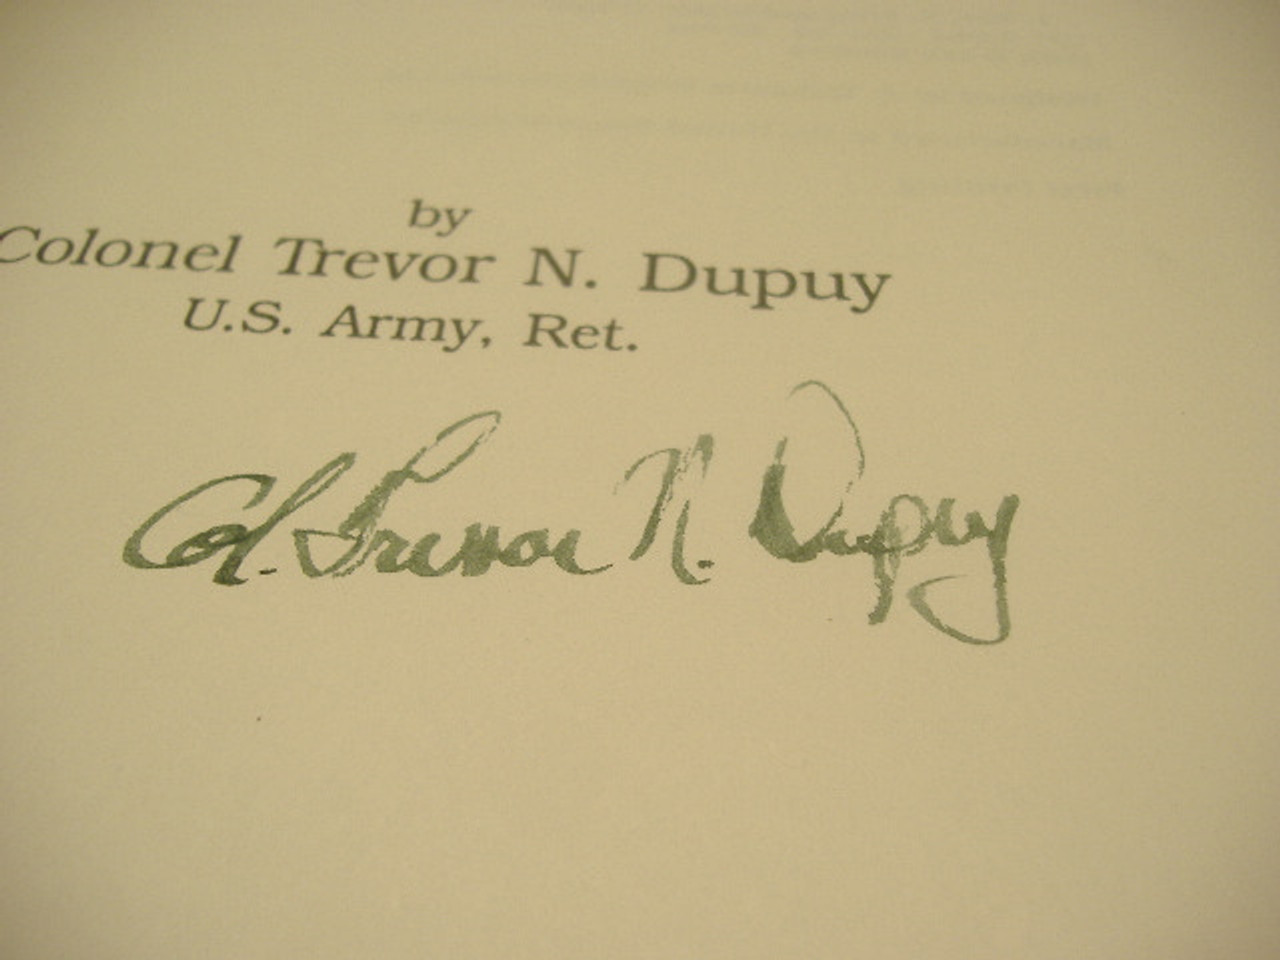 Dupuy,T.N. Colonel-The Evolution Of Weapons And Warfare